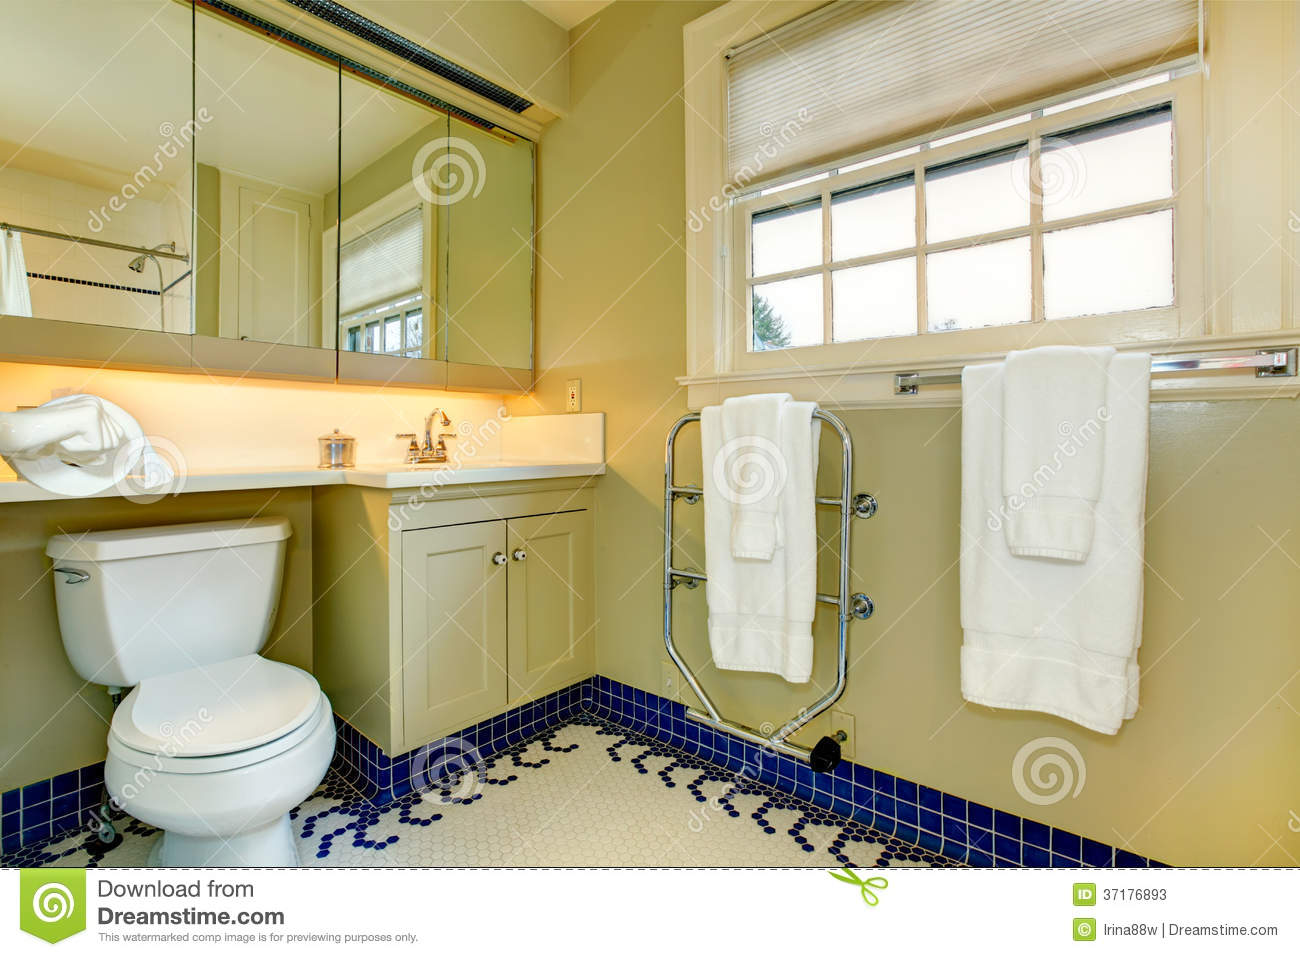 Bright Yellow Bathroom With Blue Tile Floor Stock Image Image Of Blue Architecture 37176893